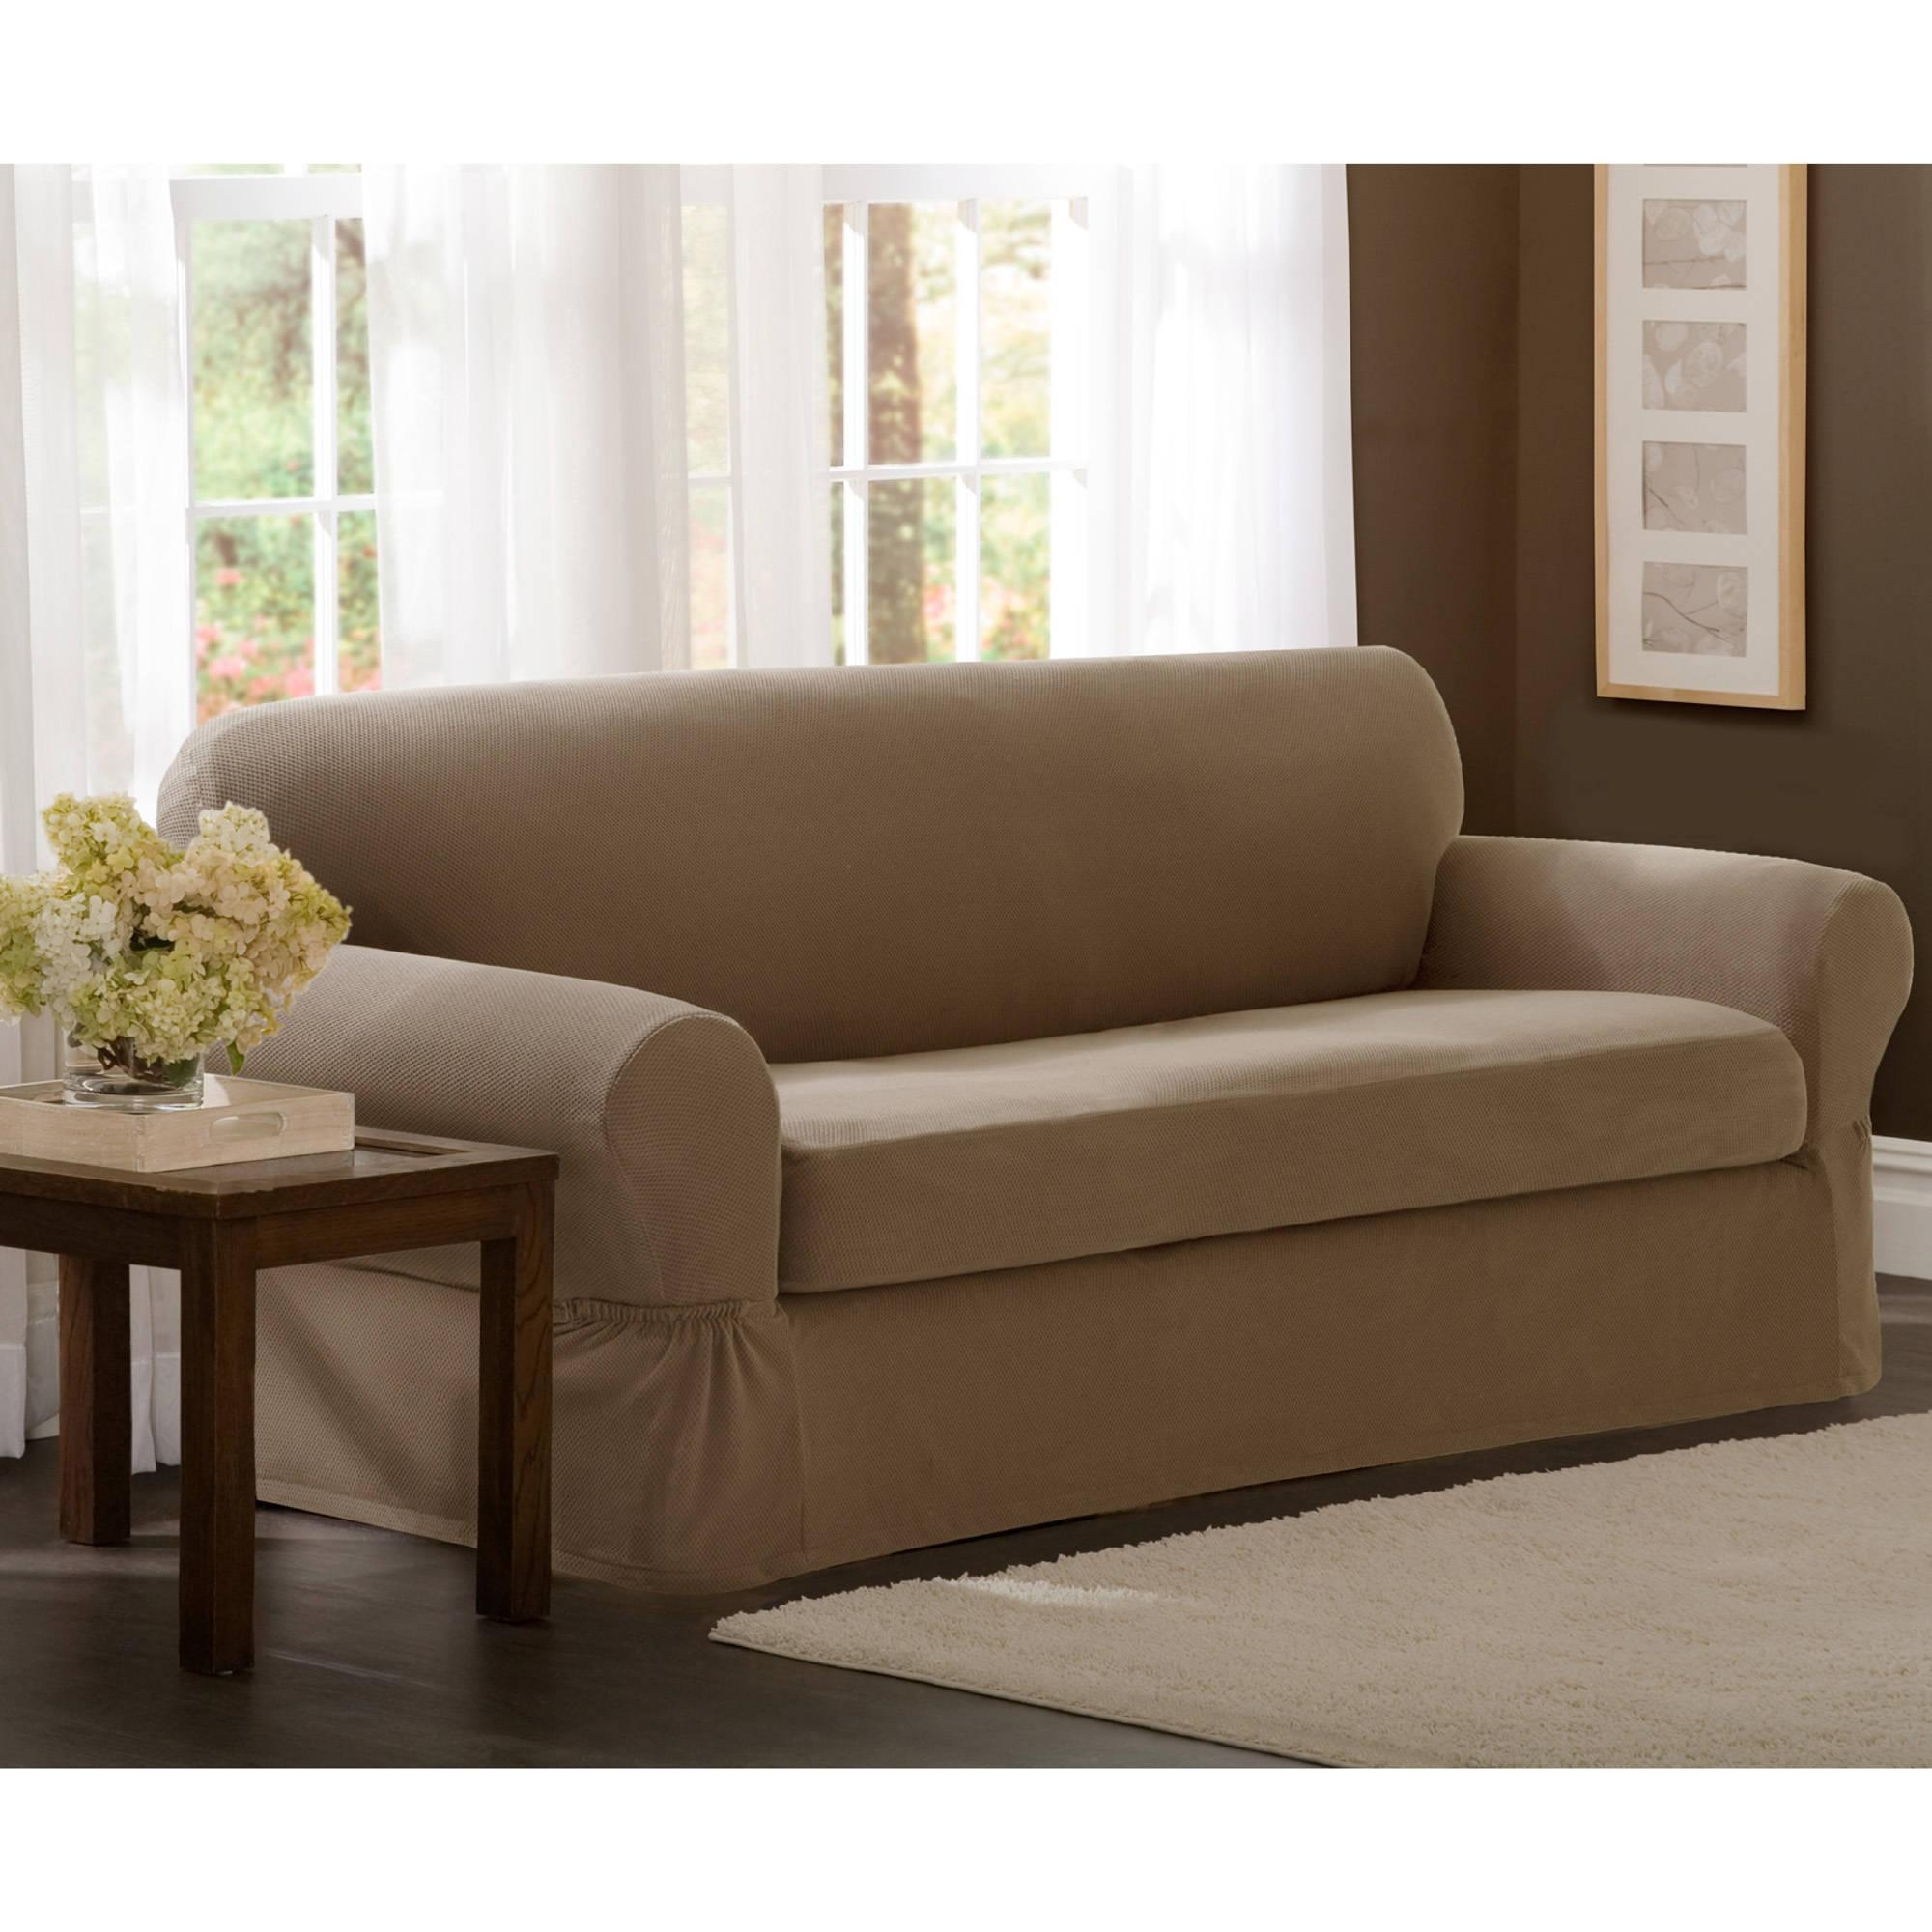 Sofas Center : 34Cf229A12Ee 1 Piece Ton Sofa Slipcover Sure Fit Within Suede Slipcovers For Sofas (Image 12 of 20)